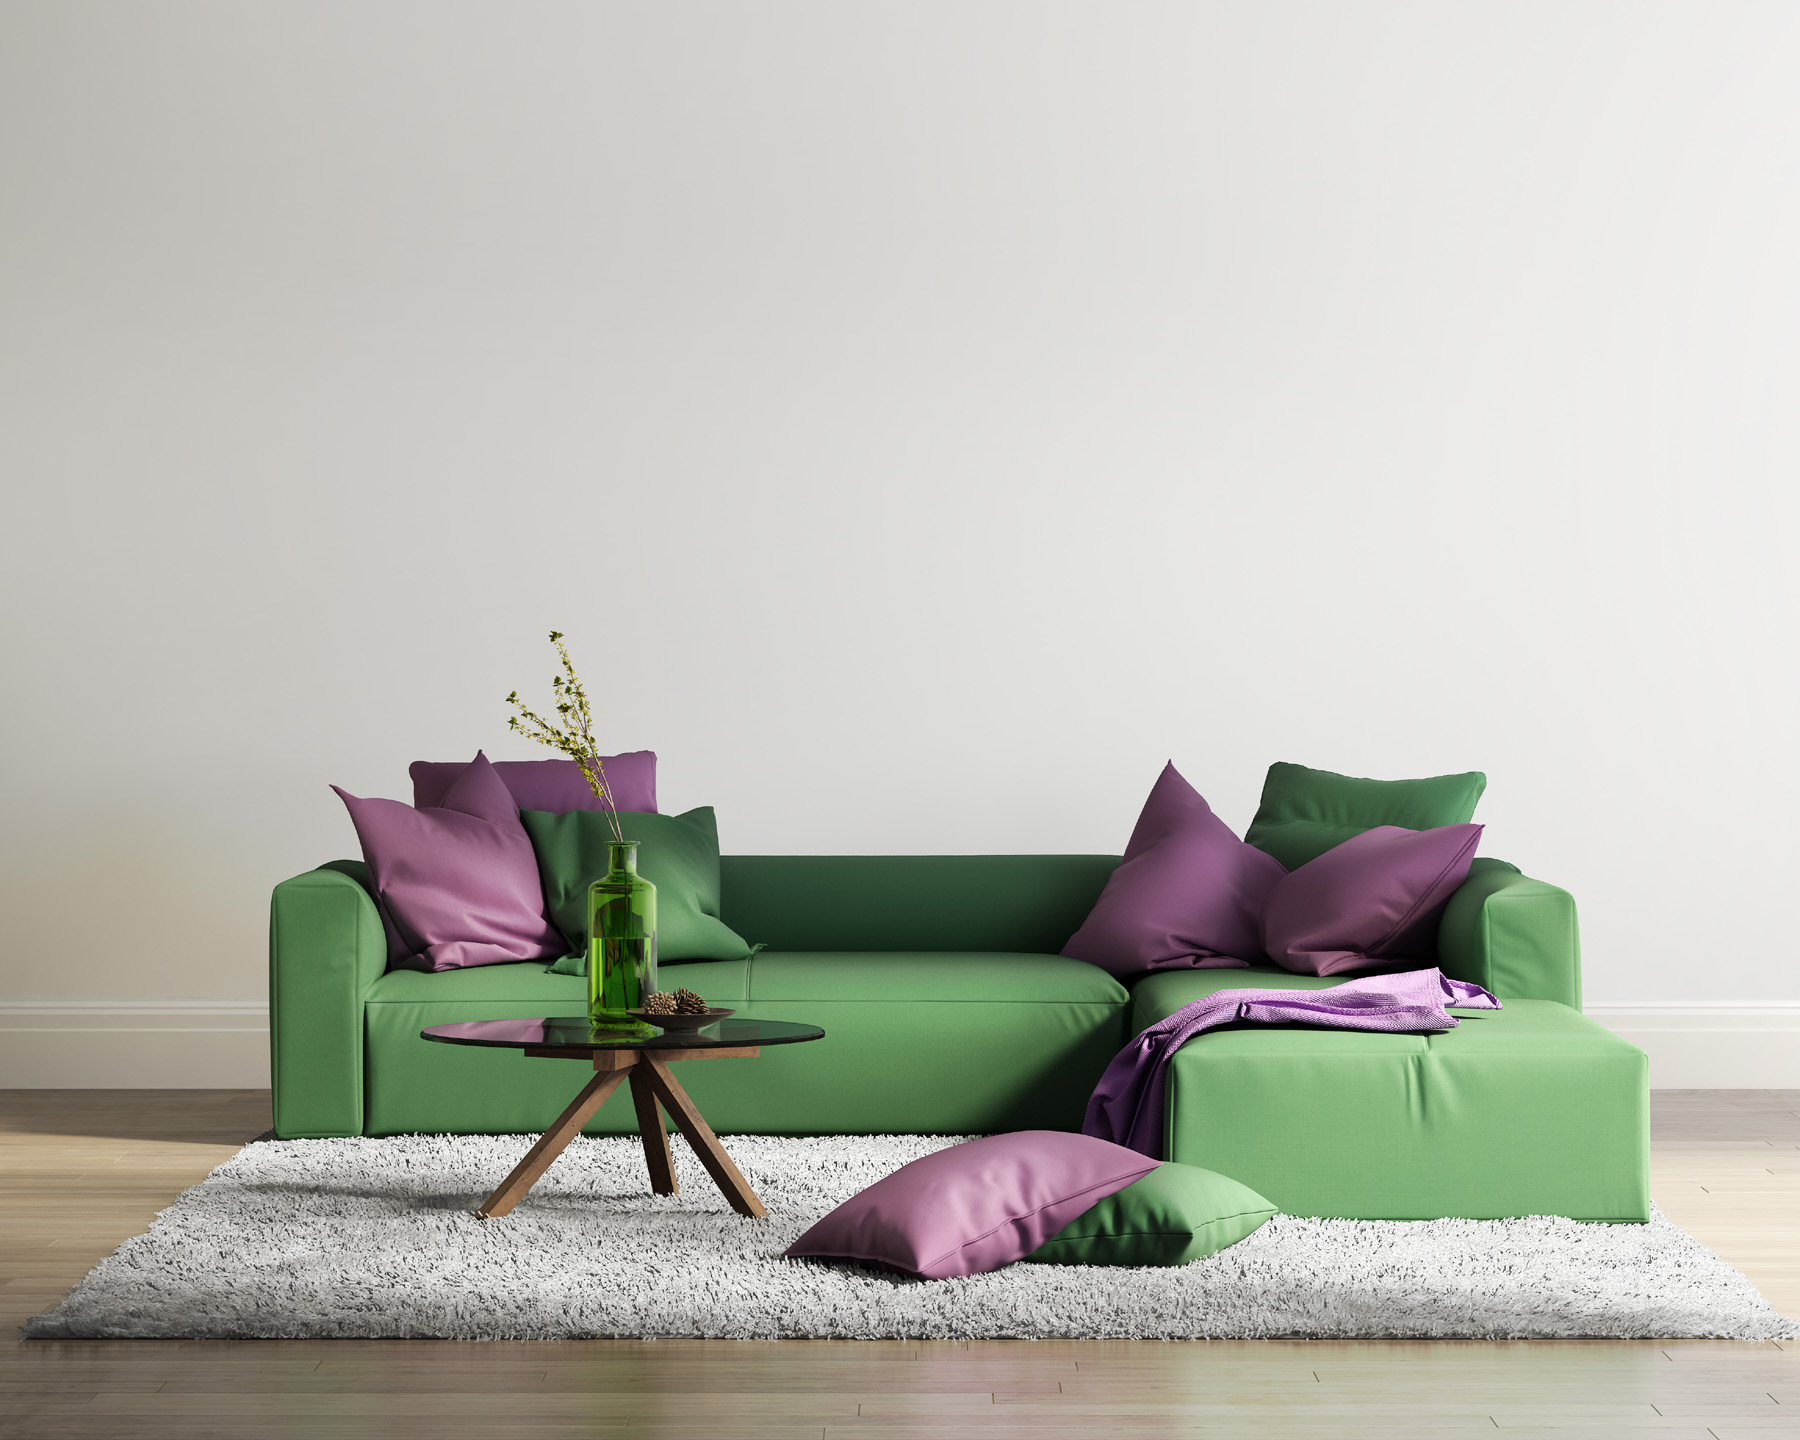 Indoor sofa pillow render effect 51726